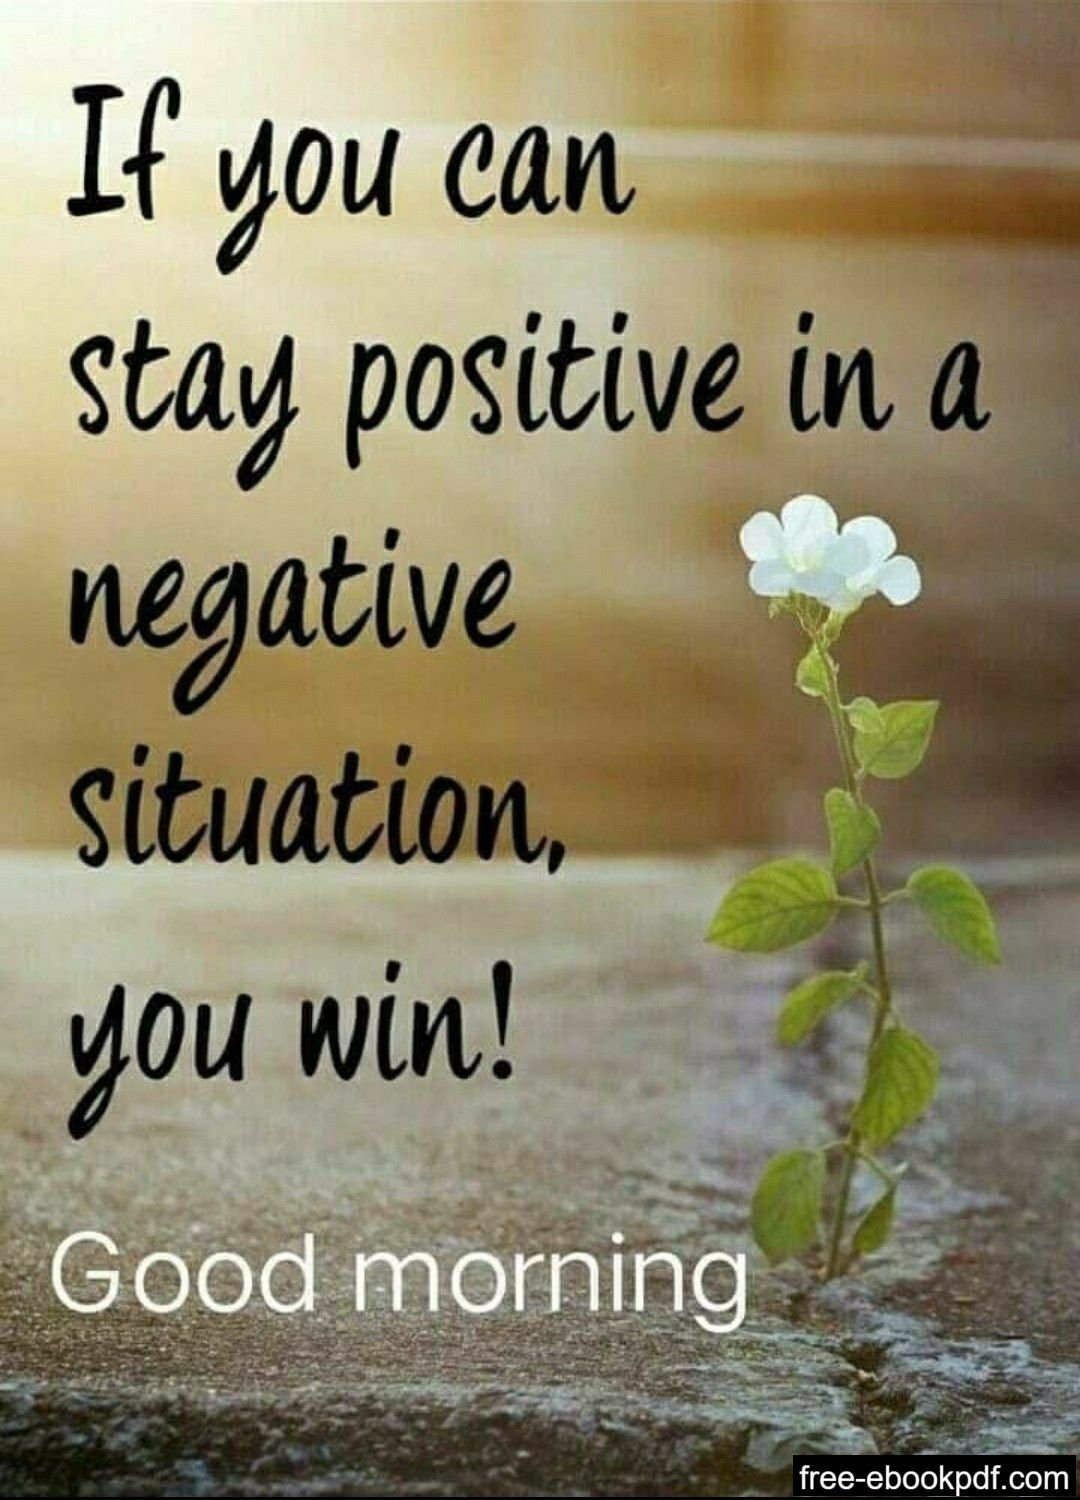 Good Morning Family And Friends Quotes   Good morning quotes, Good ...